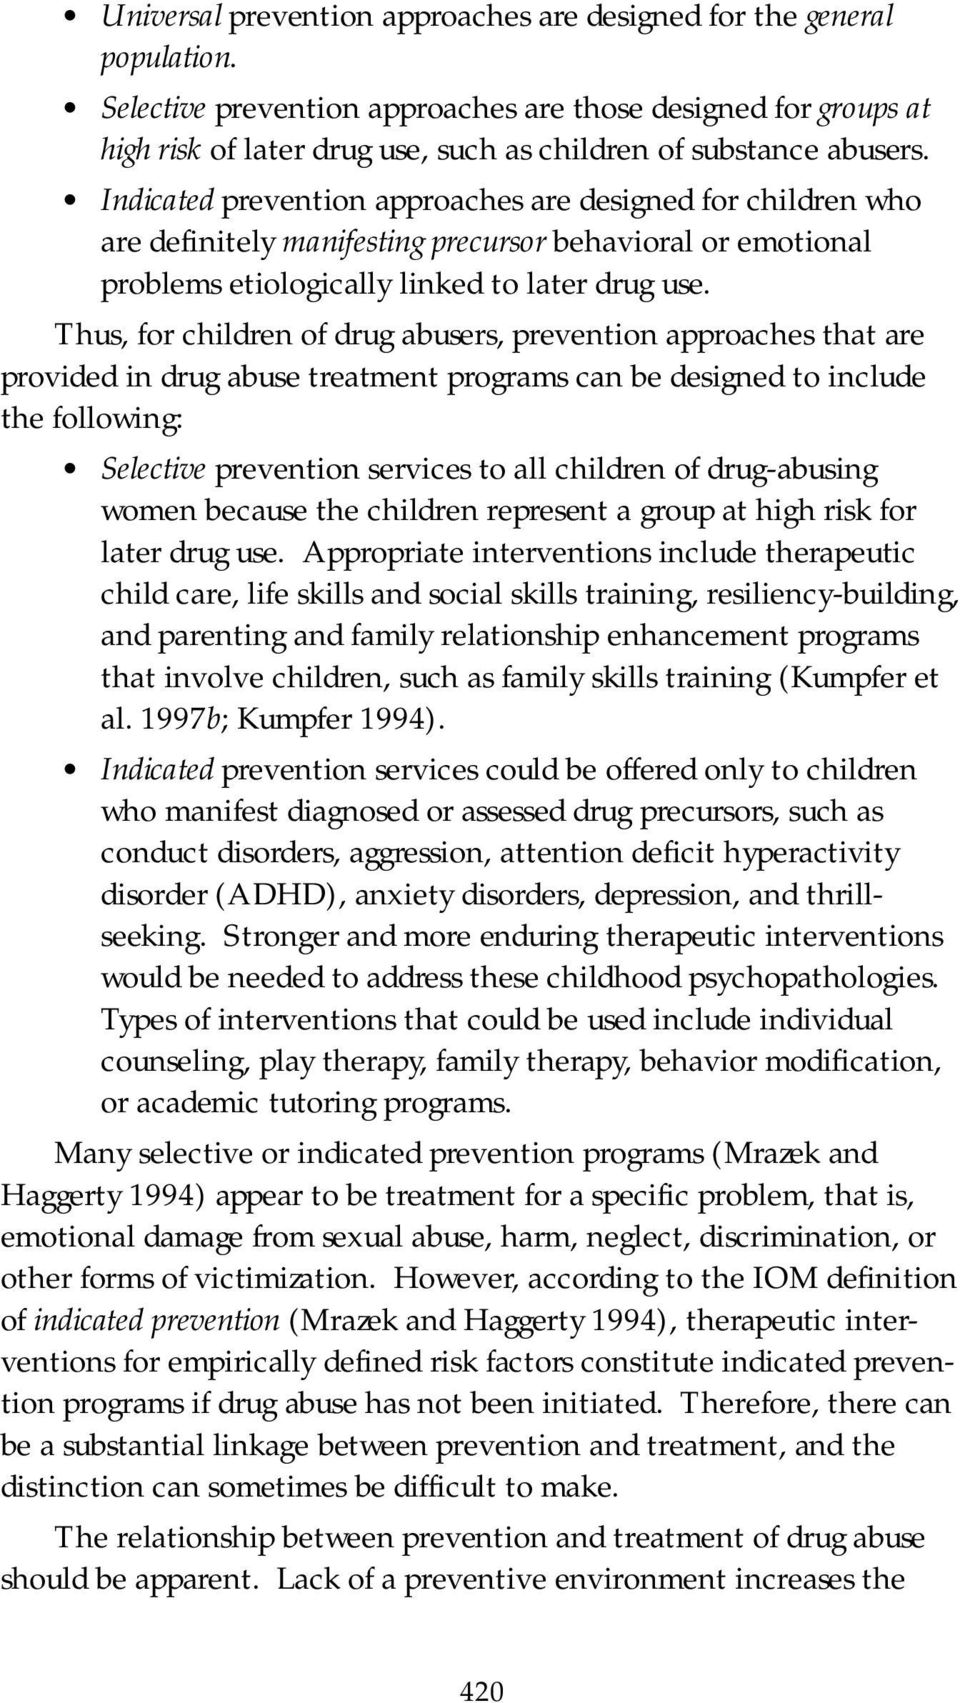 Indicated prevention approaches are designed for children who are definitely manifesting precursor behavioral or emotional problems etiologically linked to later drug use.